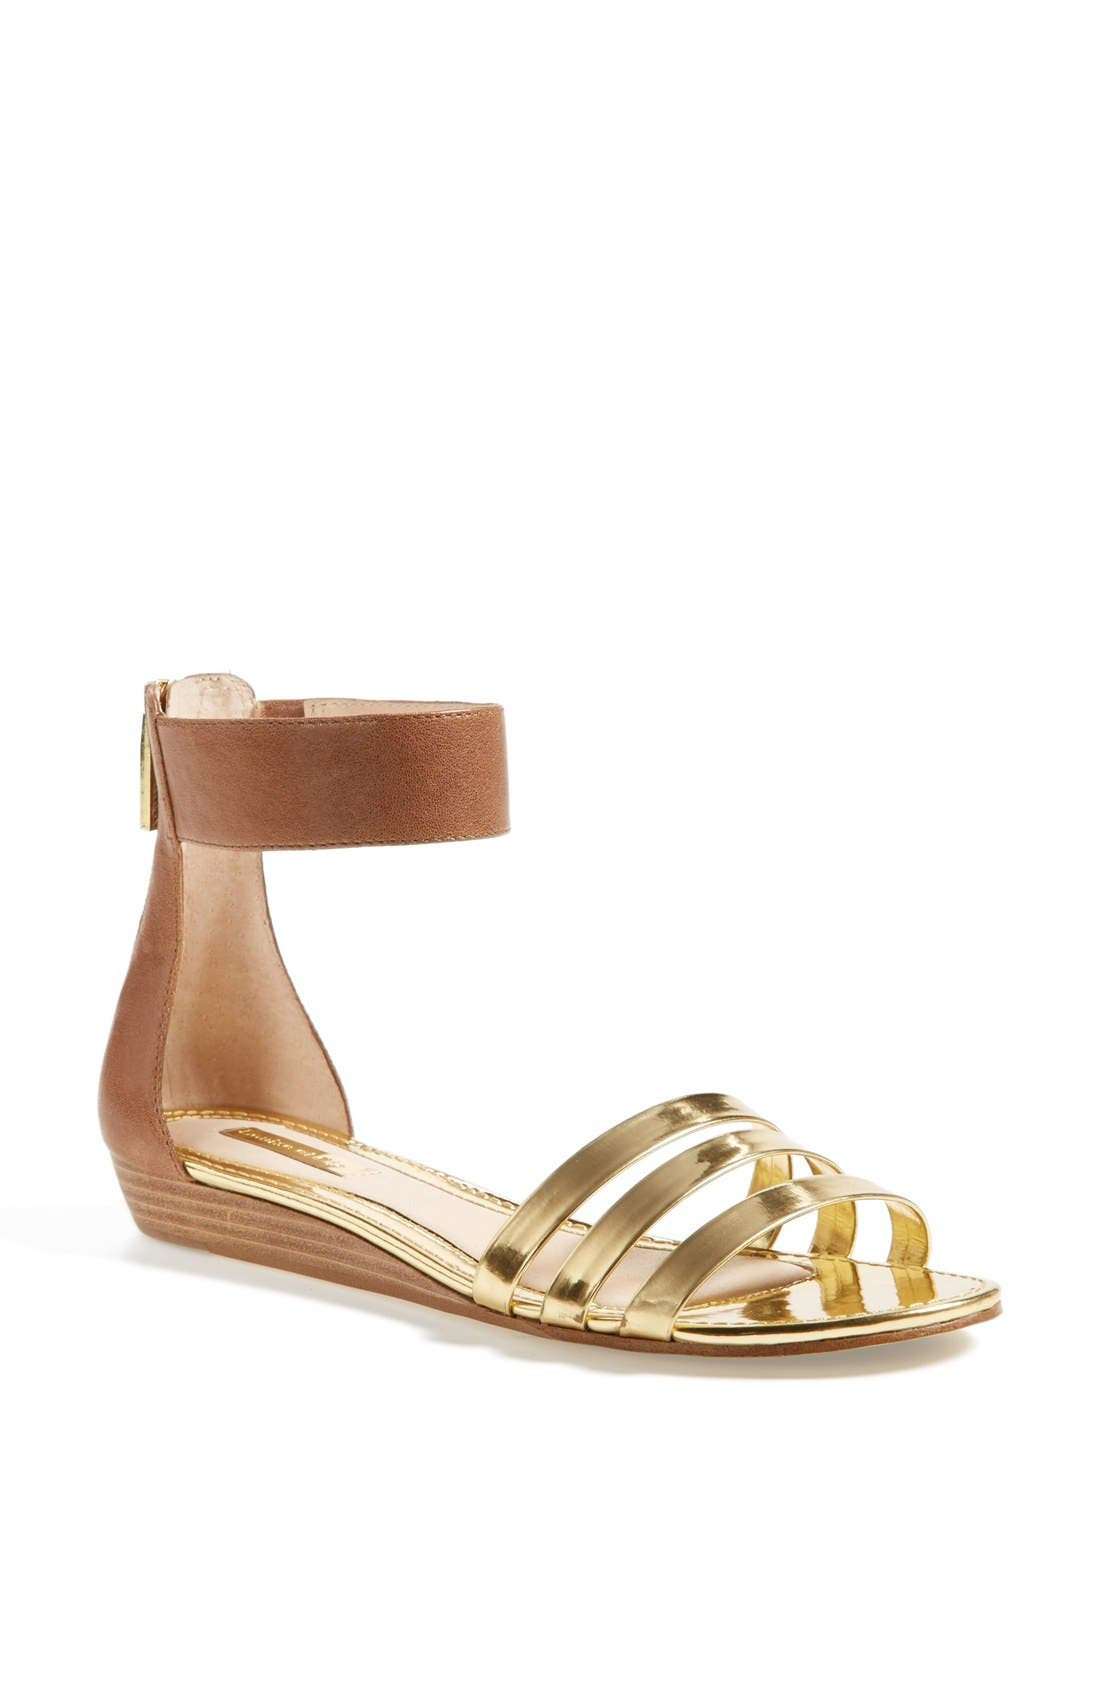 Main Image - LOUISE ET CIE OROYO WEDGE SANDAL